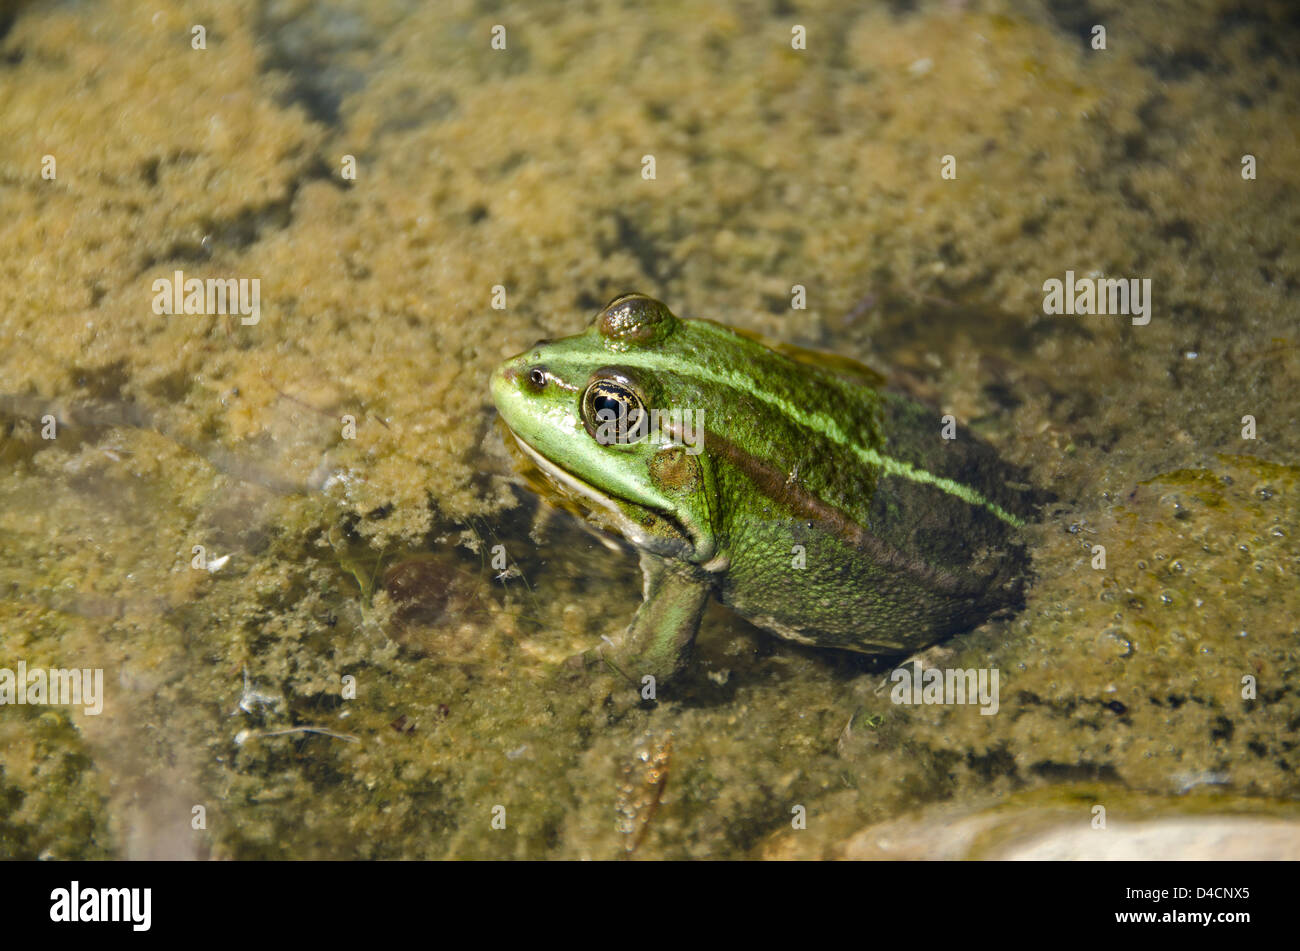 Green frog in pond - Stock Image